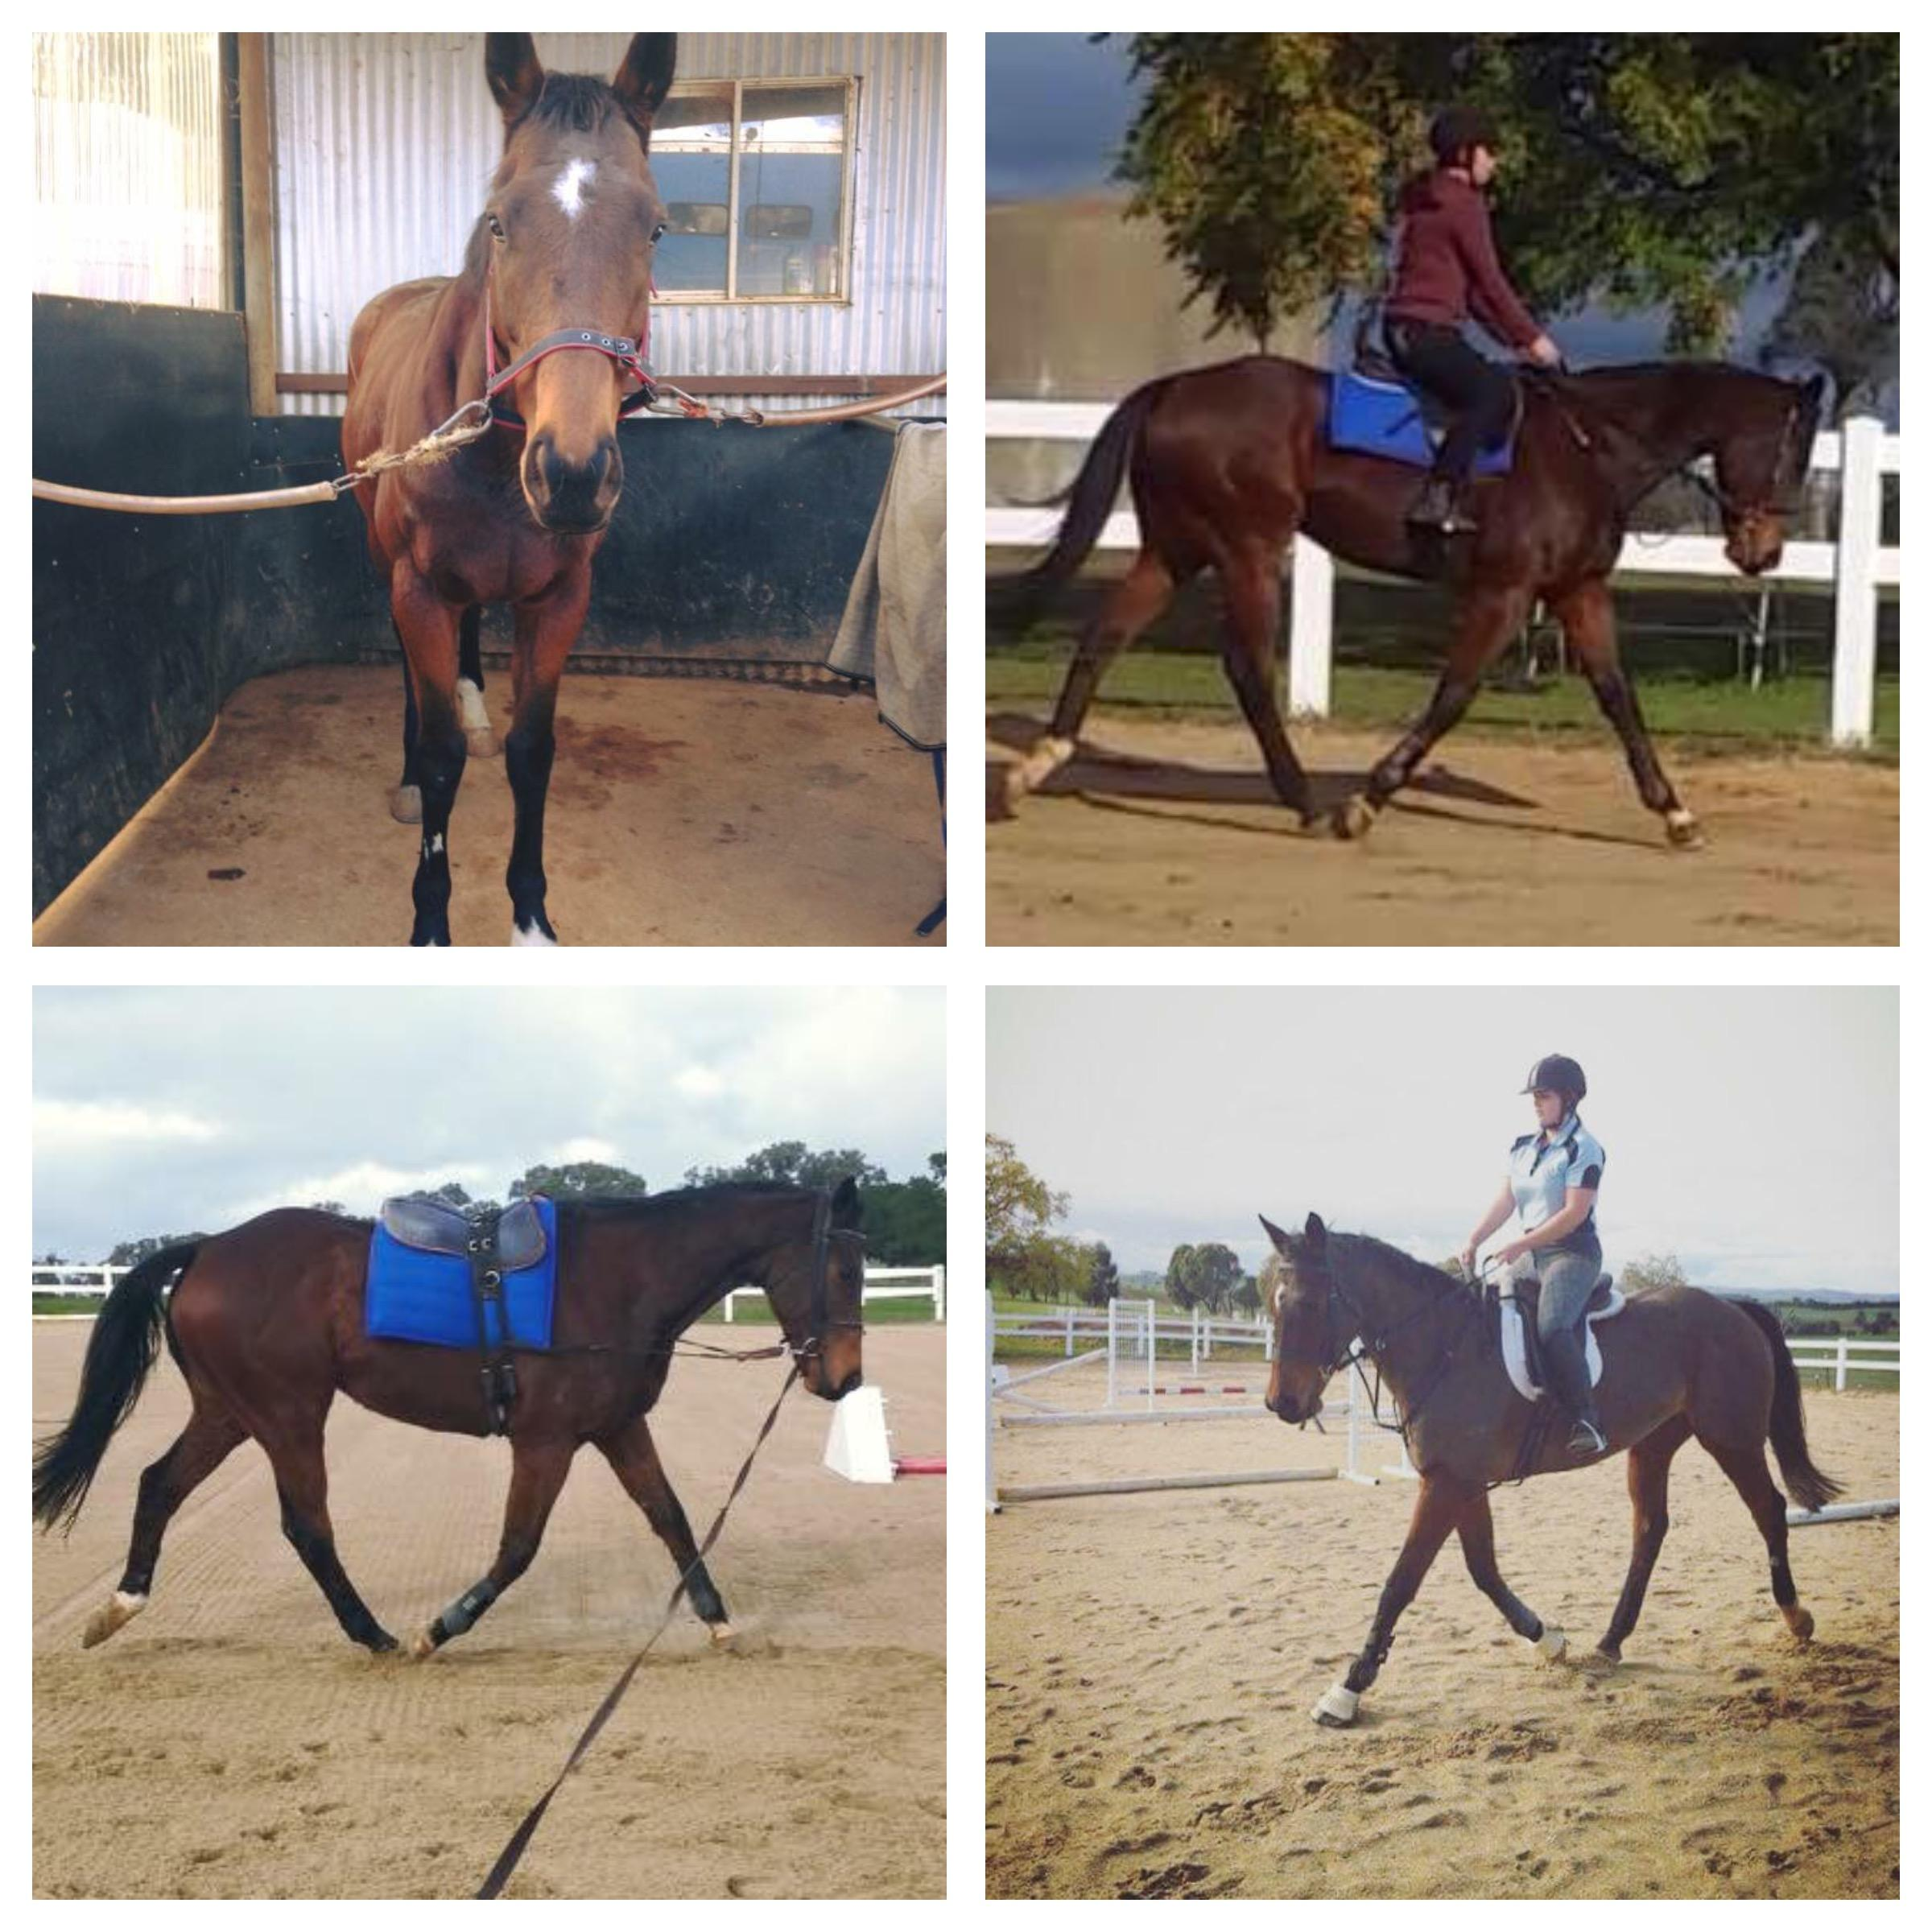 2 thoroughbreds mare and gelding